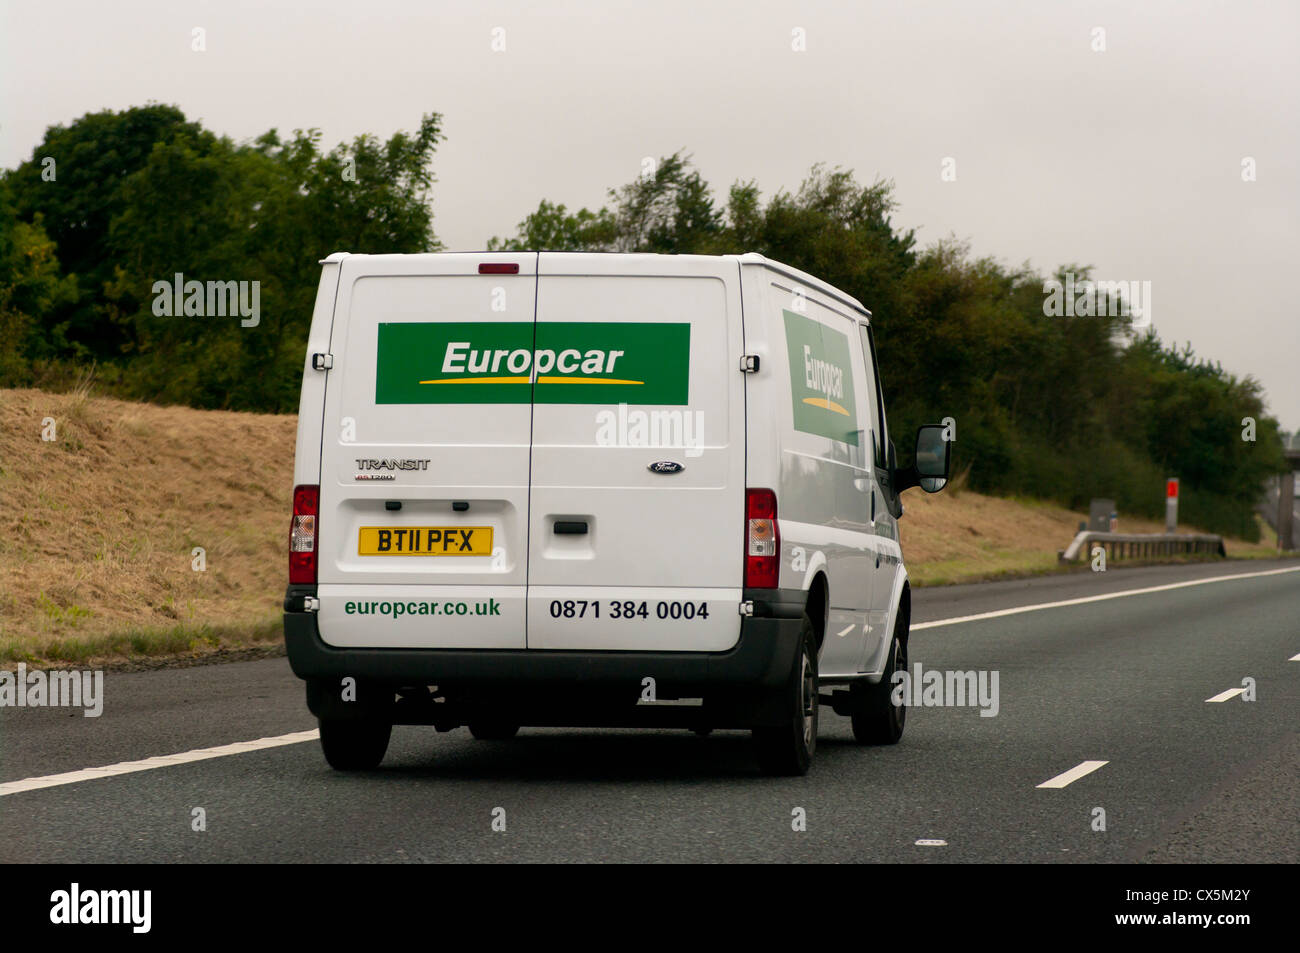 Europcar Hire Vehicle Stock Photo 50527315 Alamy